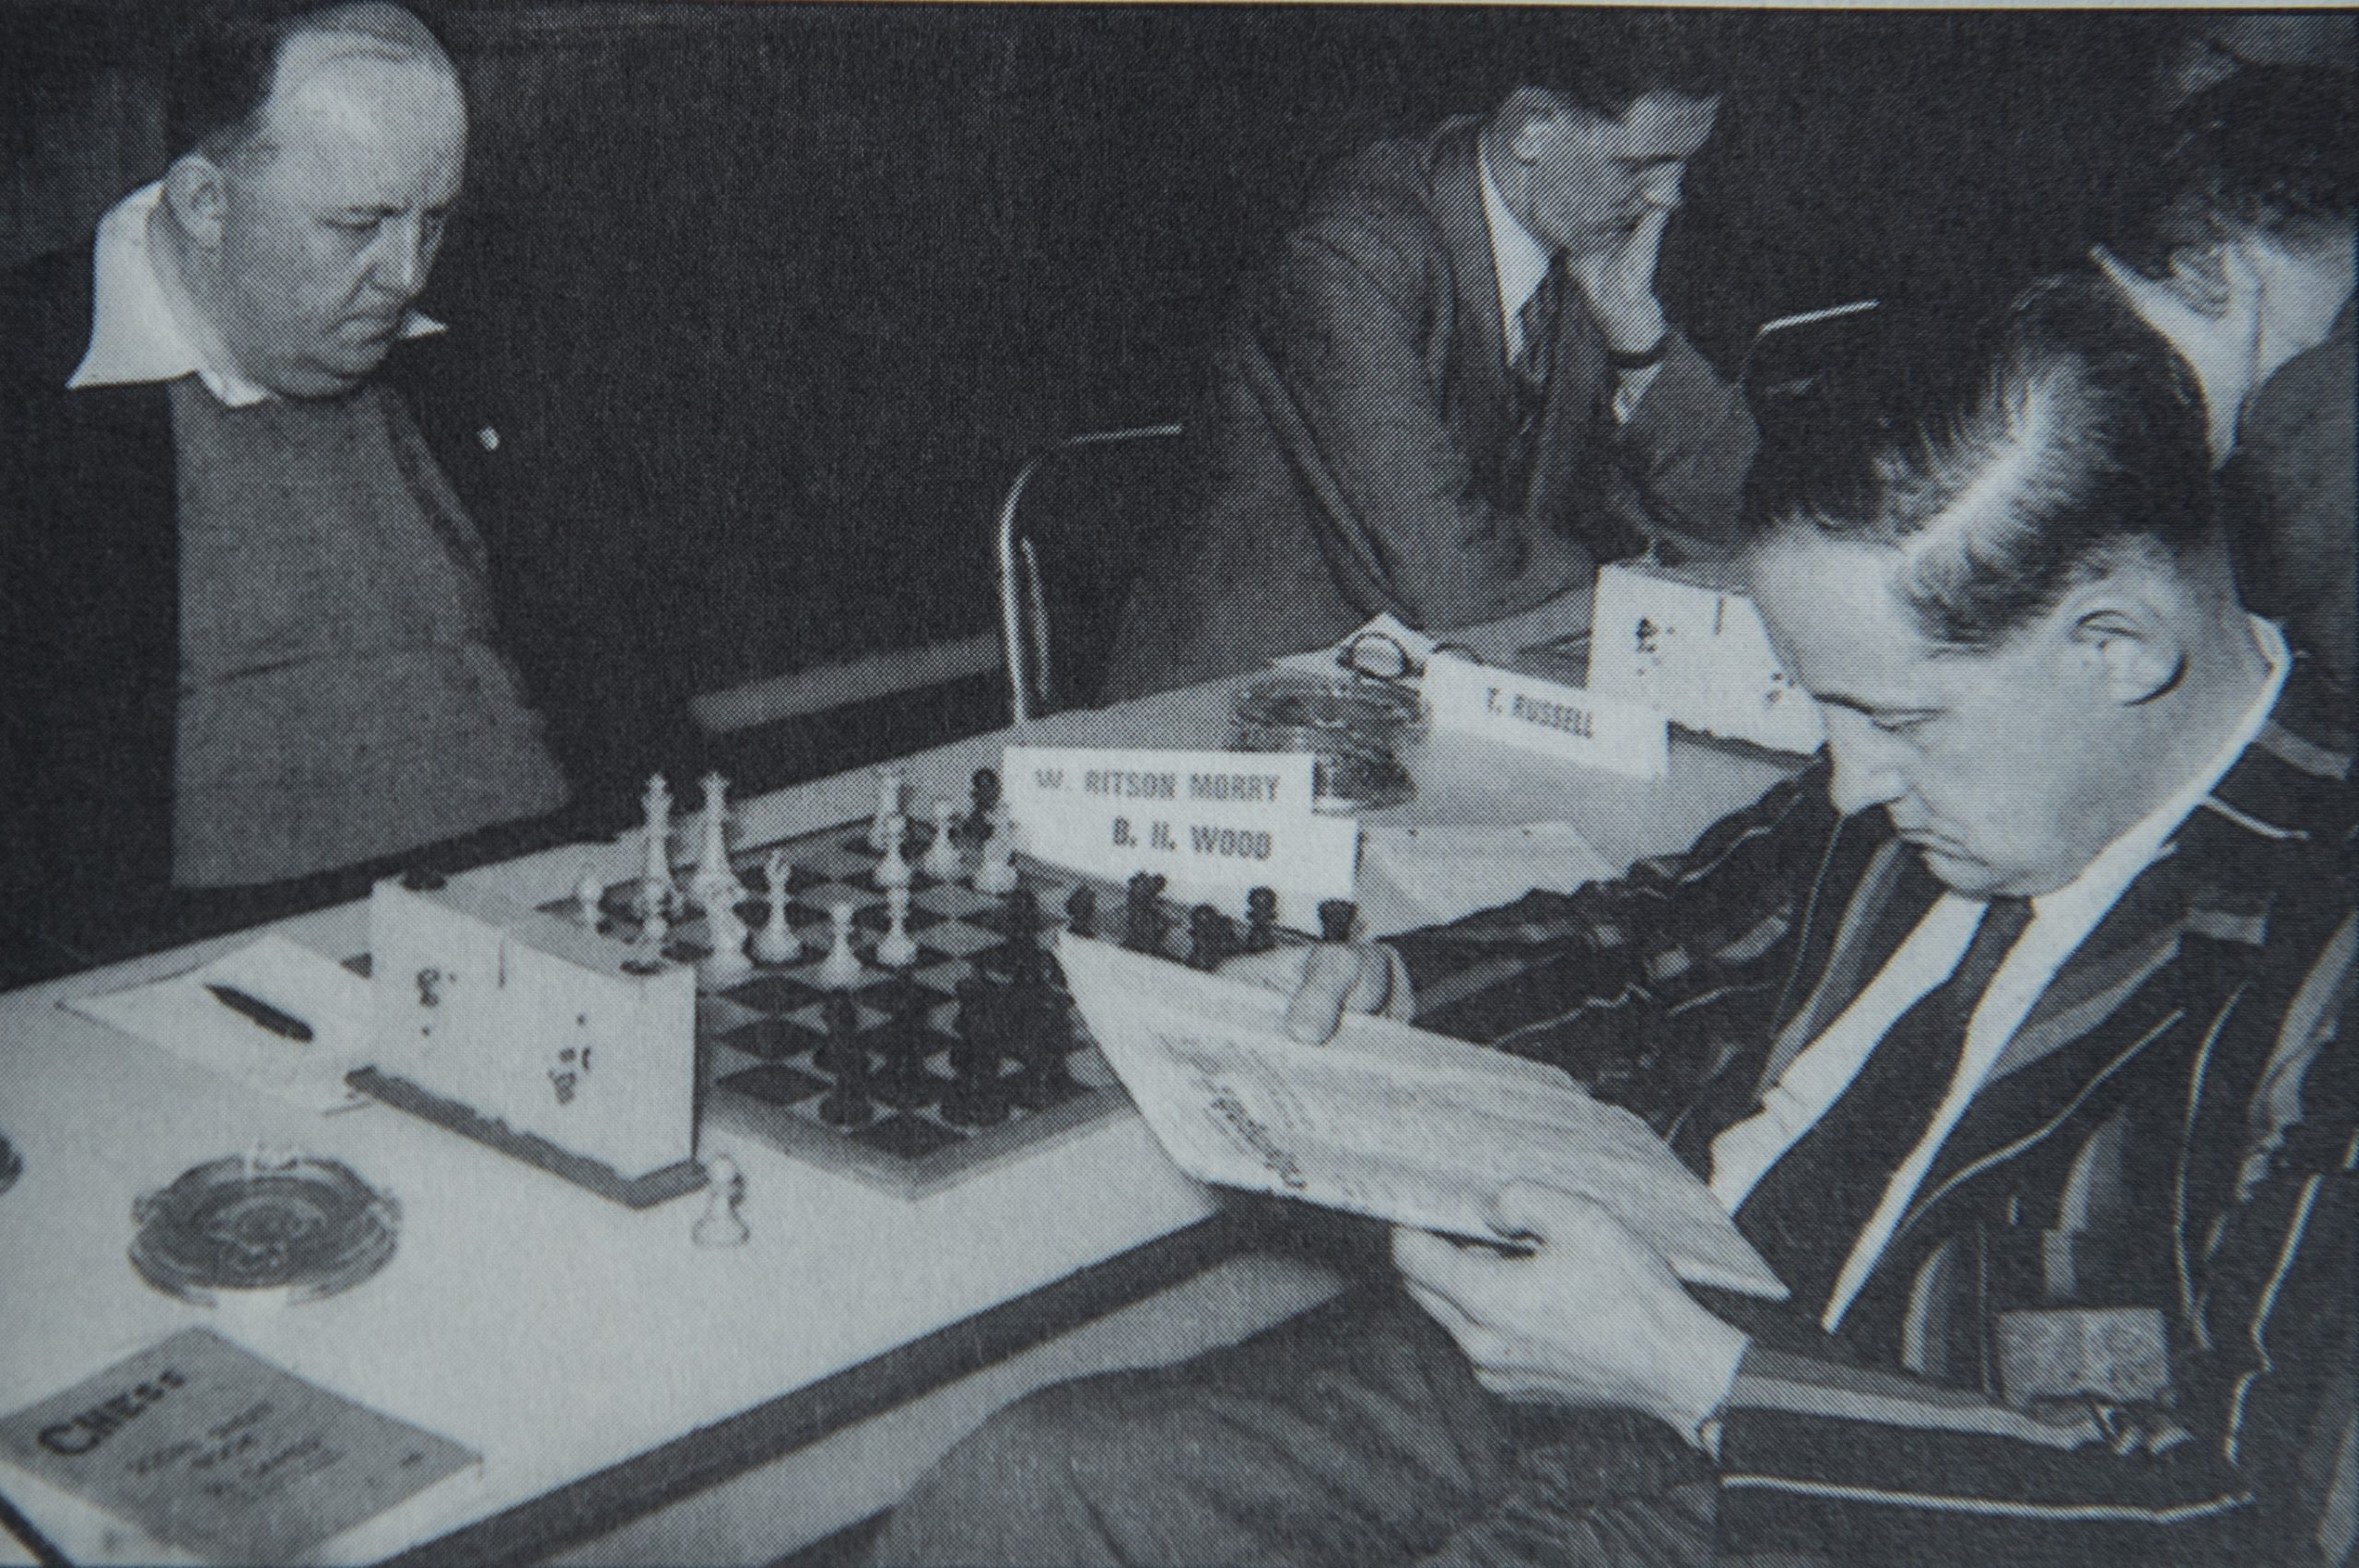 William Ritson Morry playing Baruch Harold Wood at the British Championships in Blackpool from 1956